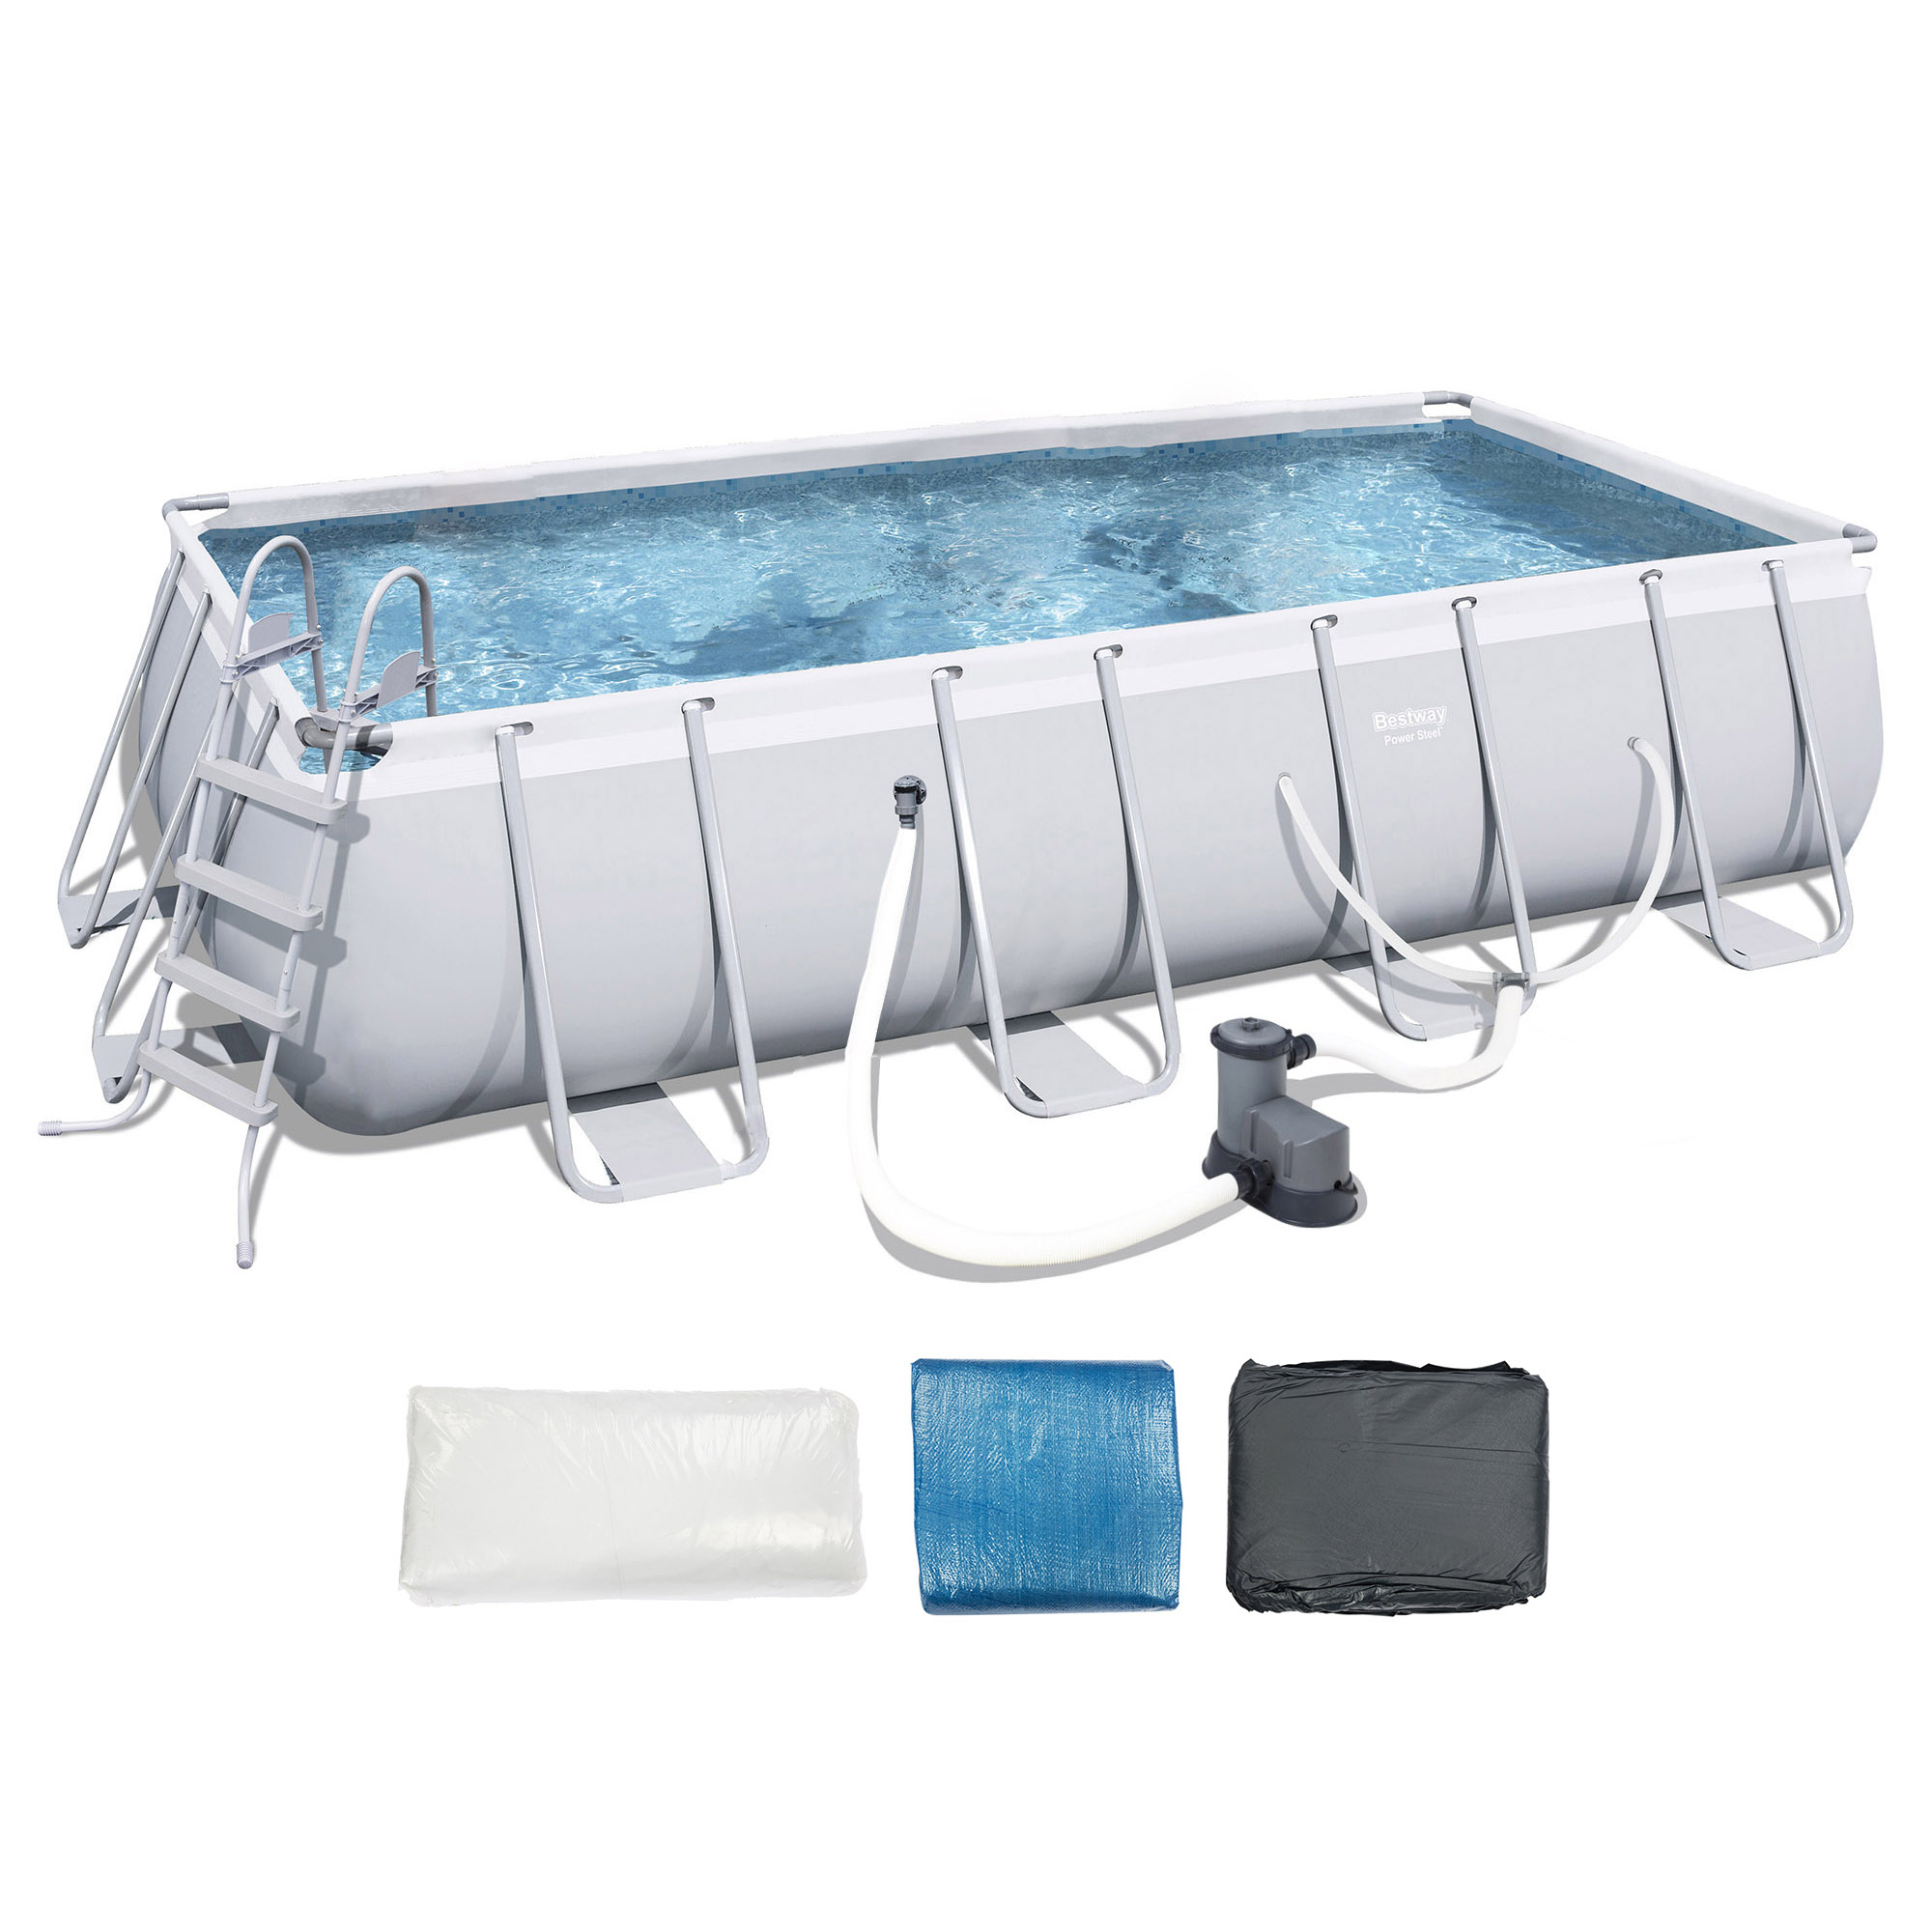 "Bestway 18'x9'x48"" Rectangular Frame Above Ground Pool Set with Ladder & Pump"